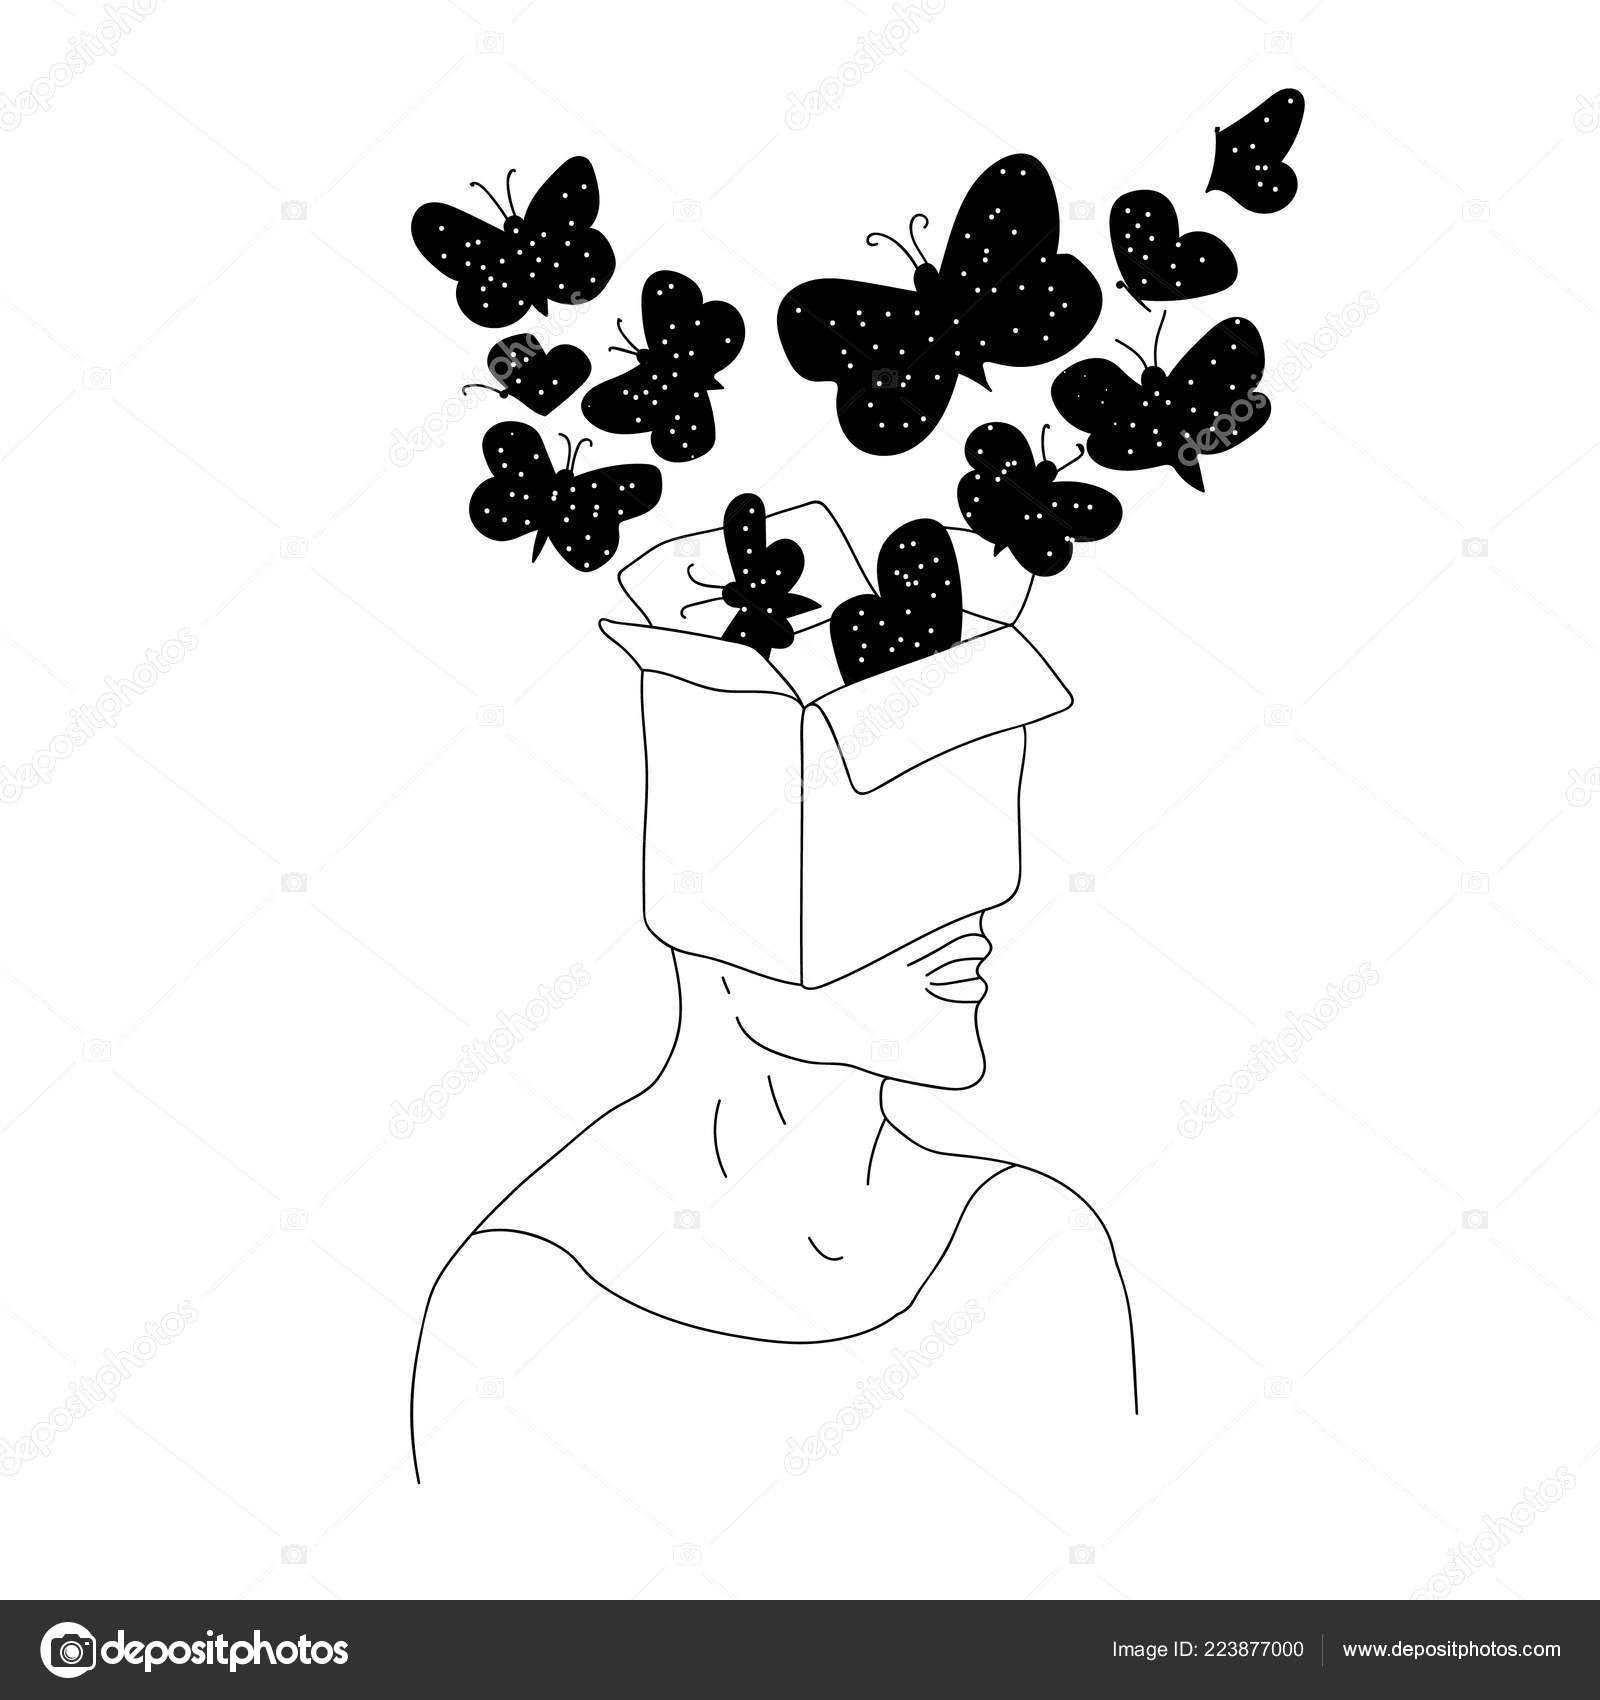 butterflies head cosmic philosophical art abstract vector drawing Head-Fi AK100 portriat of the magic surreal witch man with a head as night sky full of moth butterflies dreamy sci fi tattoo